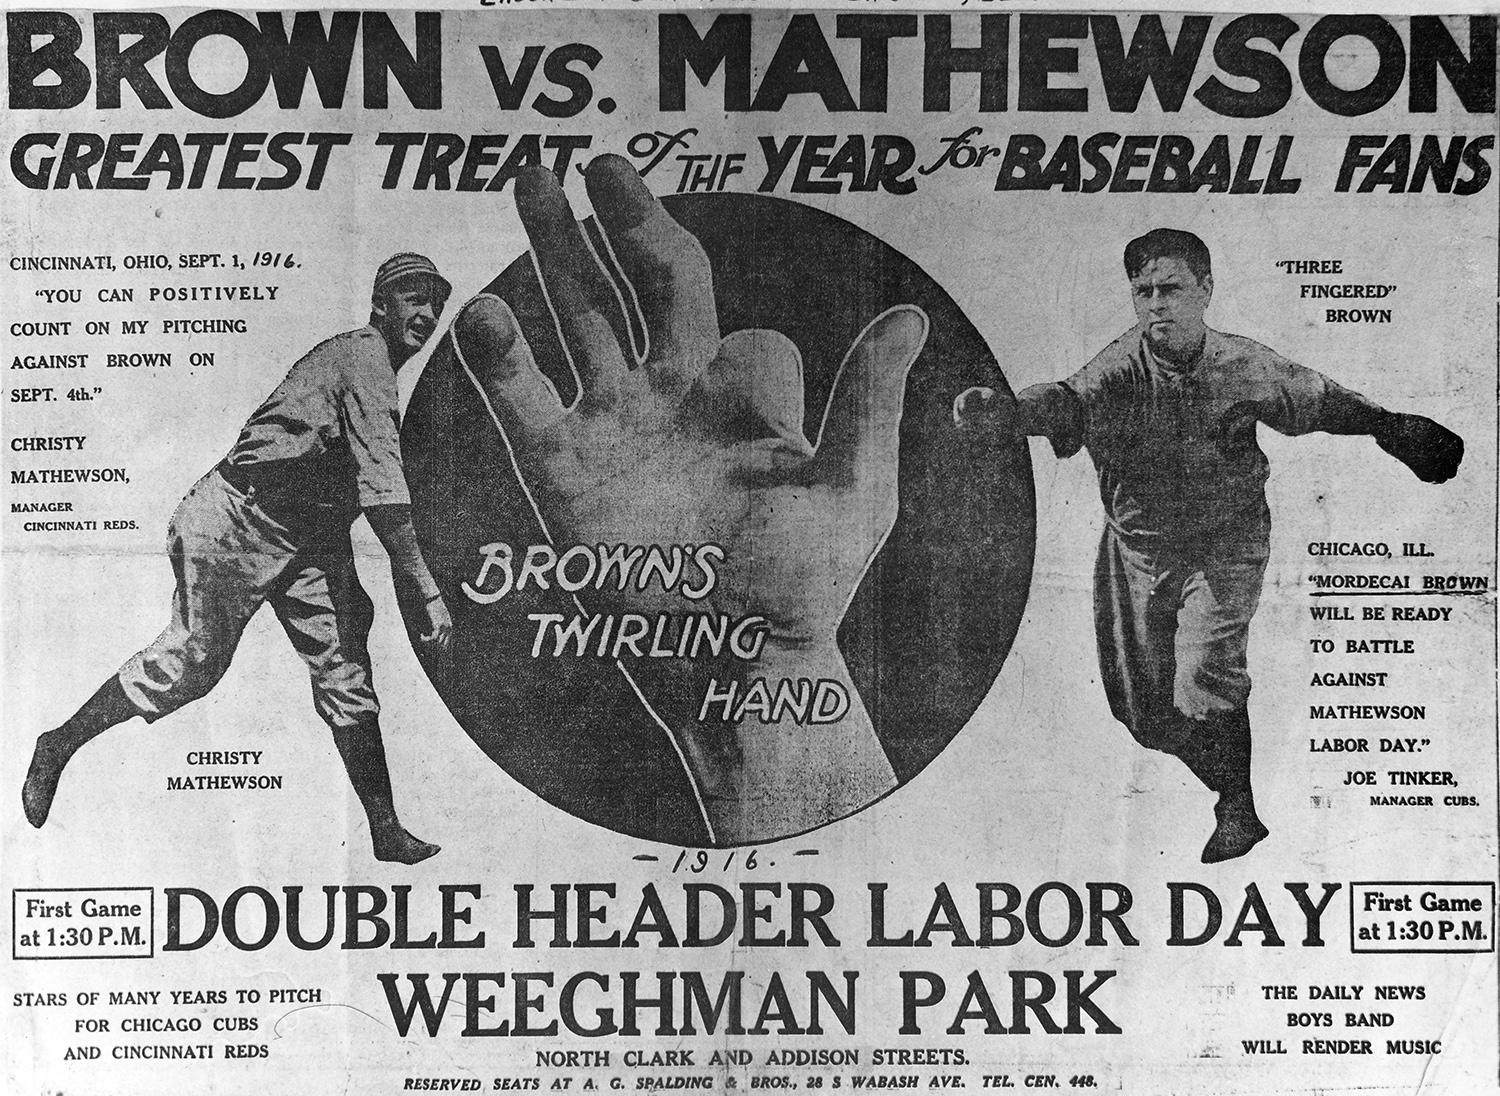 A promotional poster advertising the Sept. 4, 1916 matchup between Mordecai Brown and Christy Mathewson. This game would be the last time they'd face each other, after squaring off 24 times previously. (National Baseball Hall of Fame and Museum)